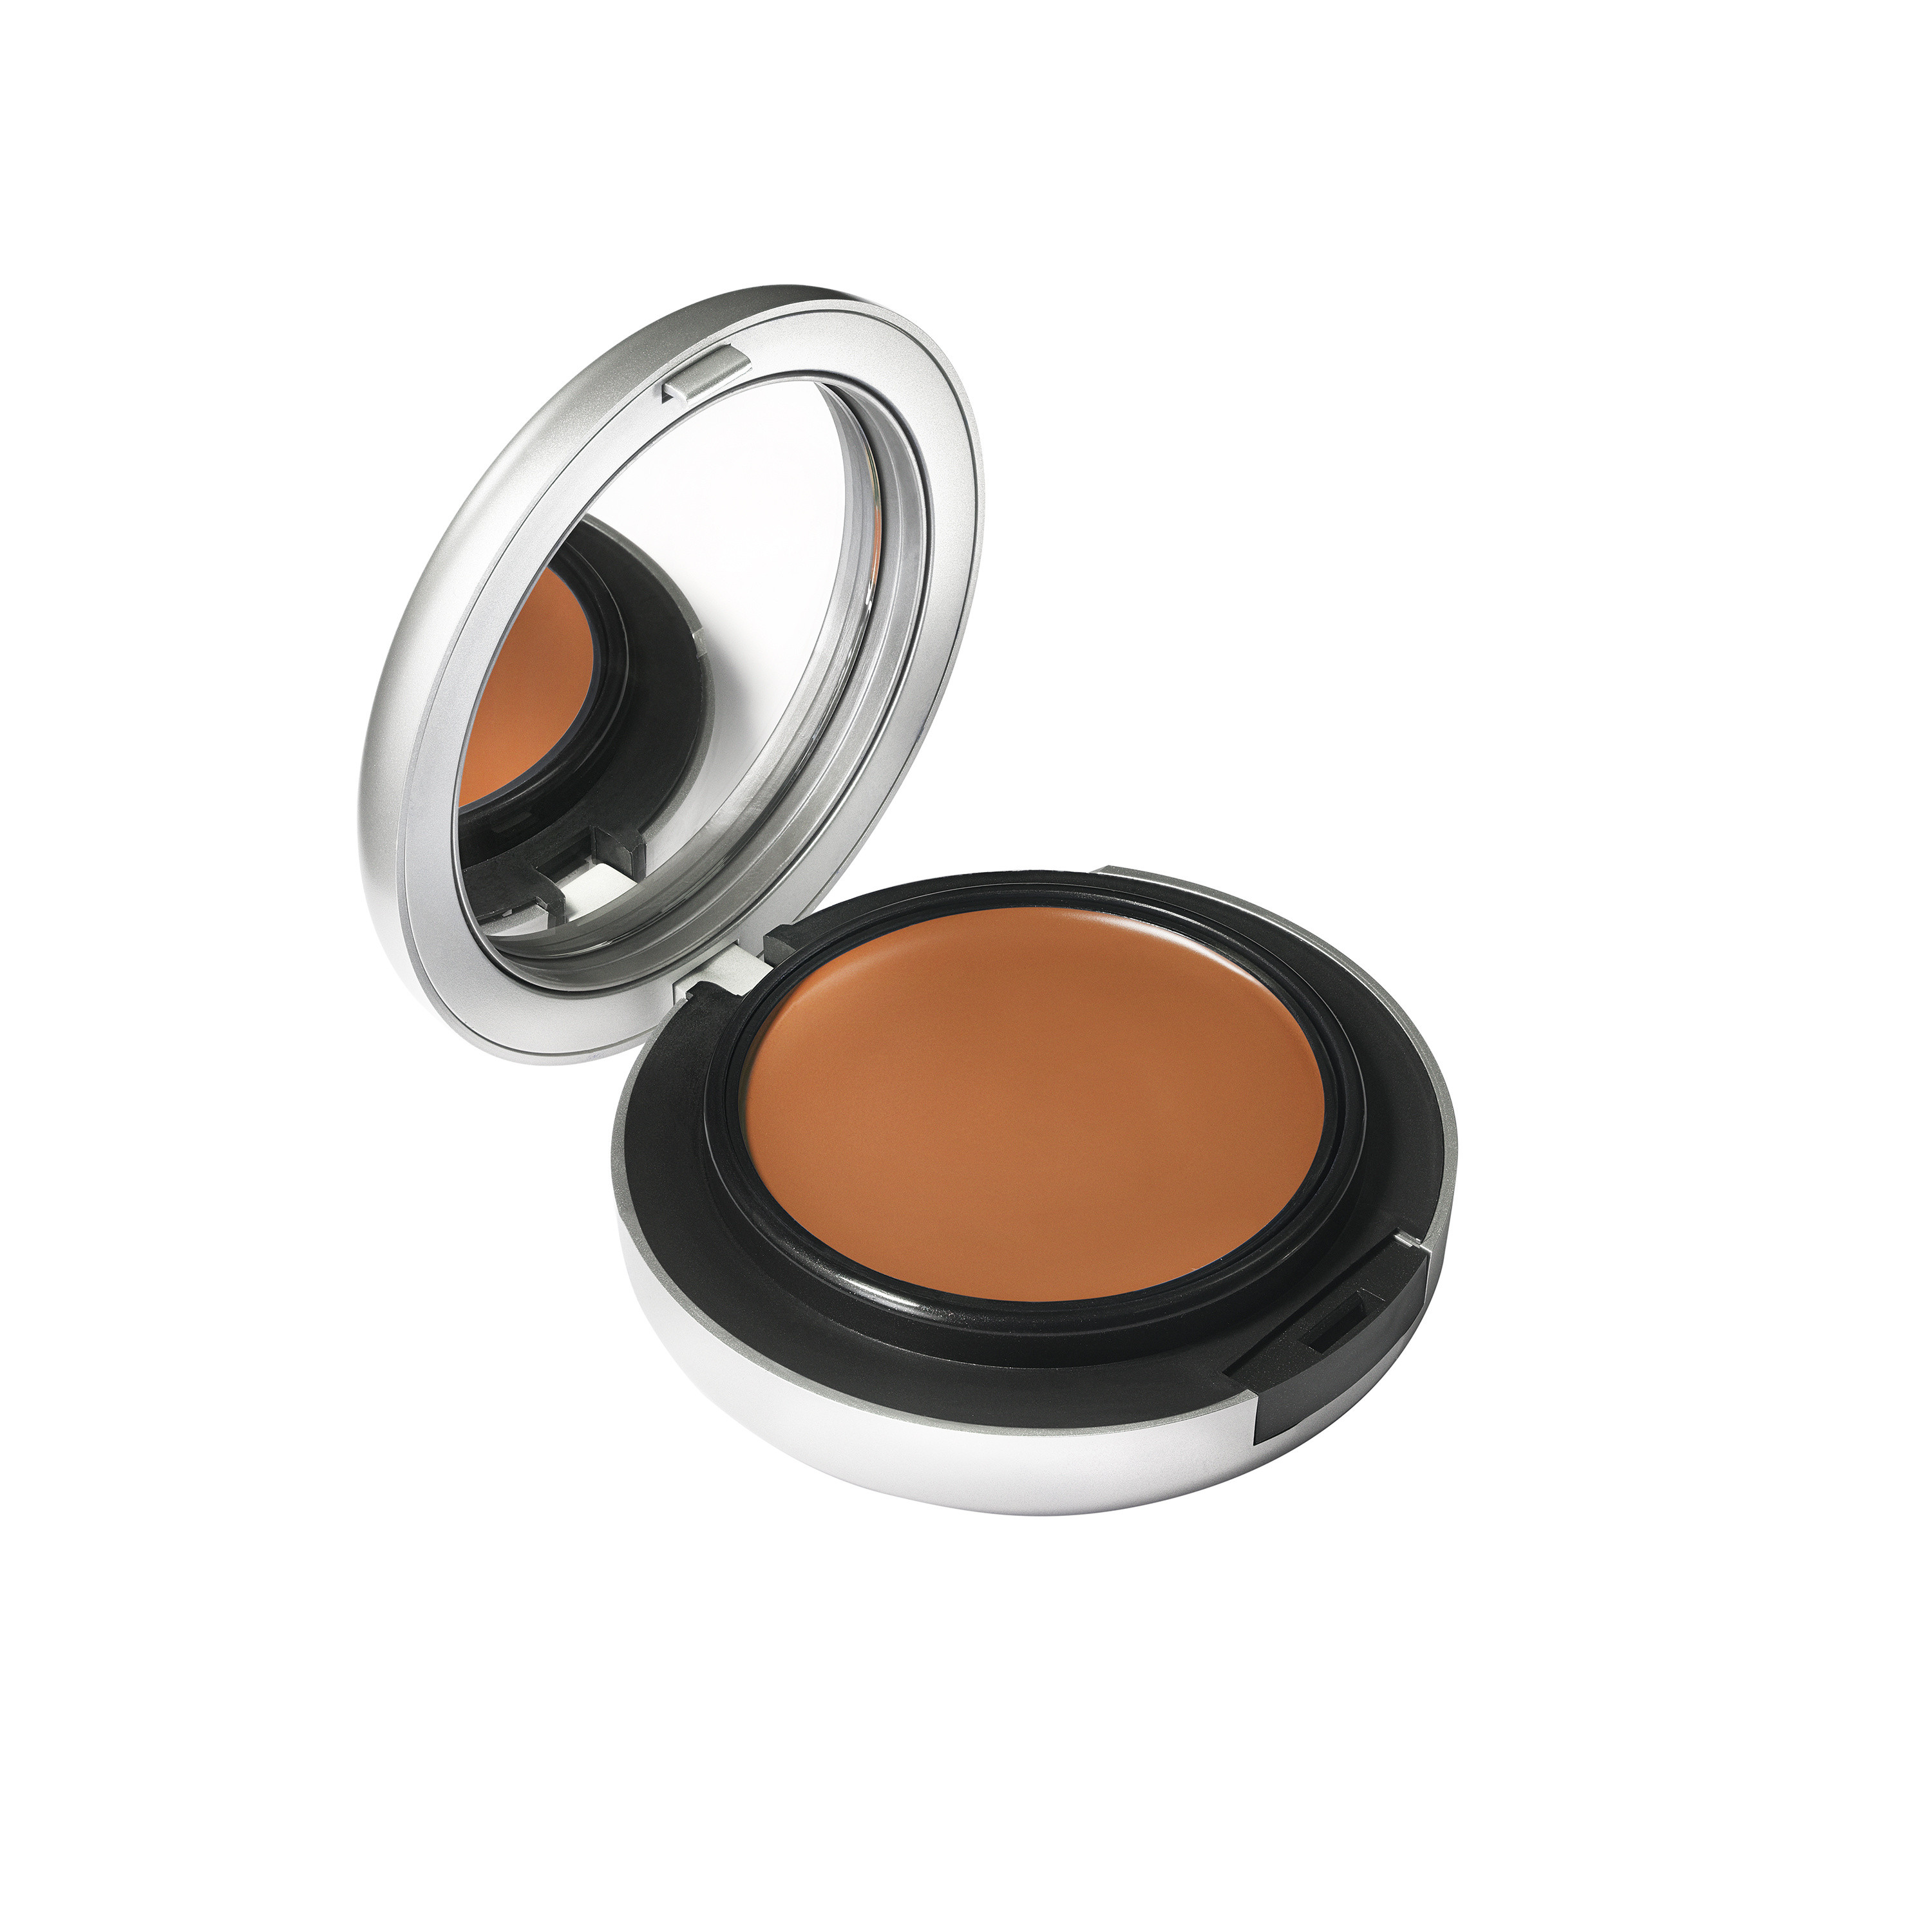 Studio Fix Tech Cream-To-Powder Fdt - NW43, NW43, large image number 1